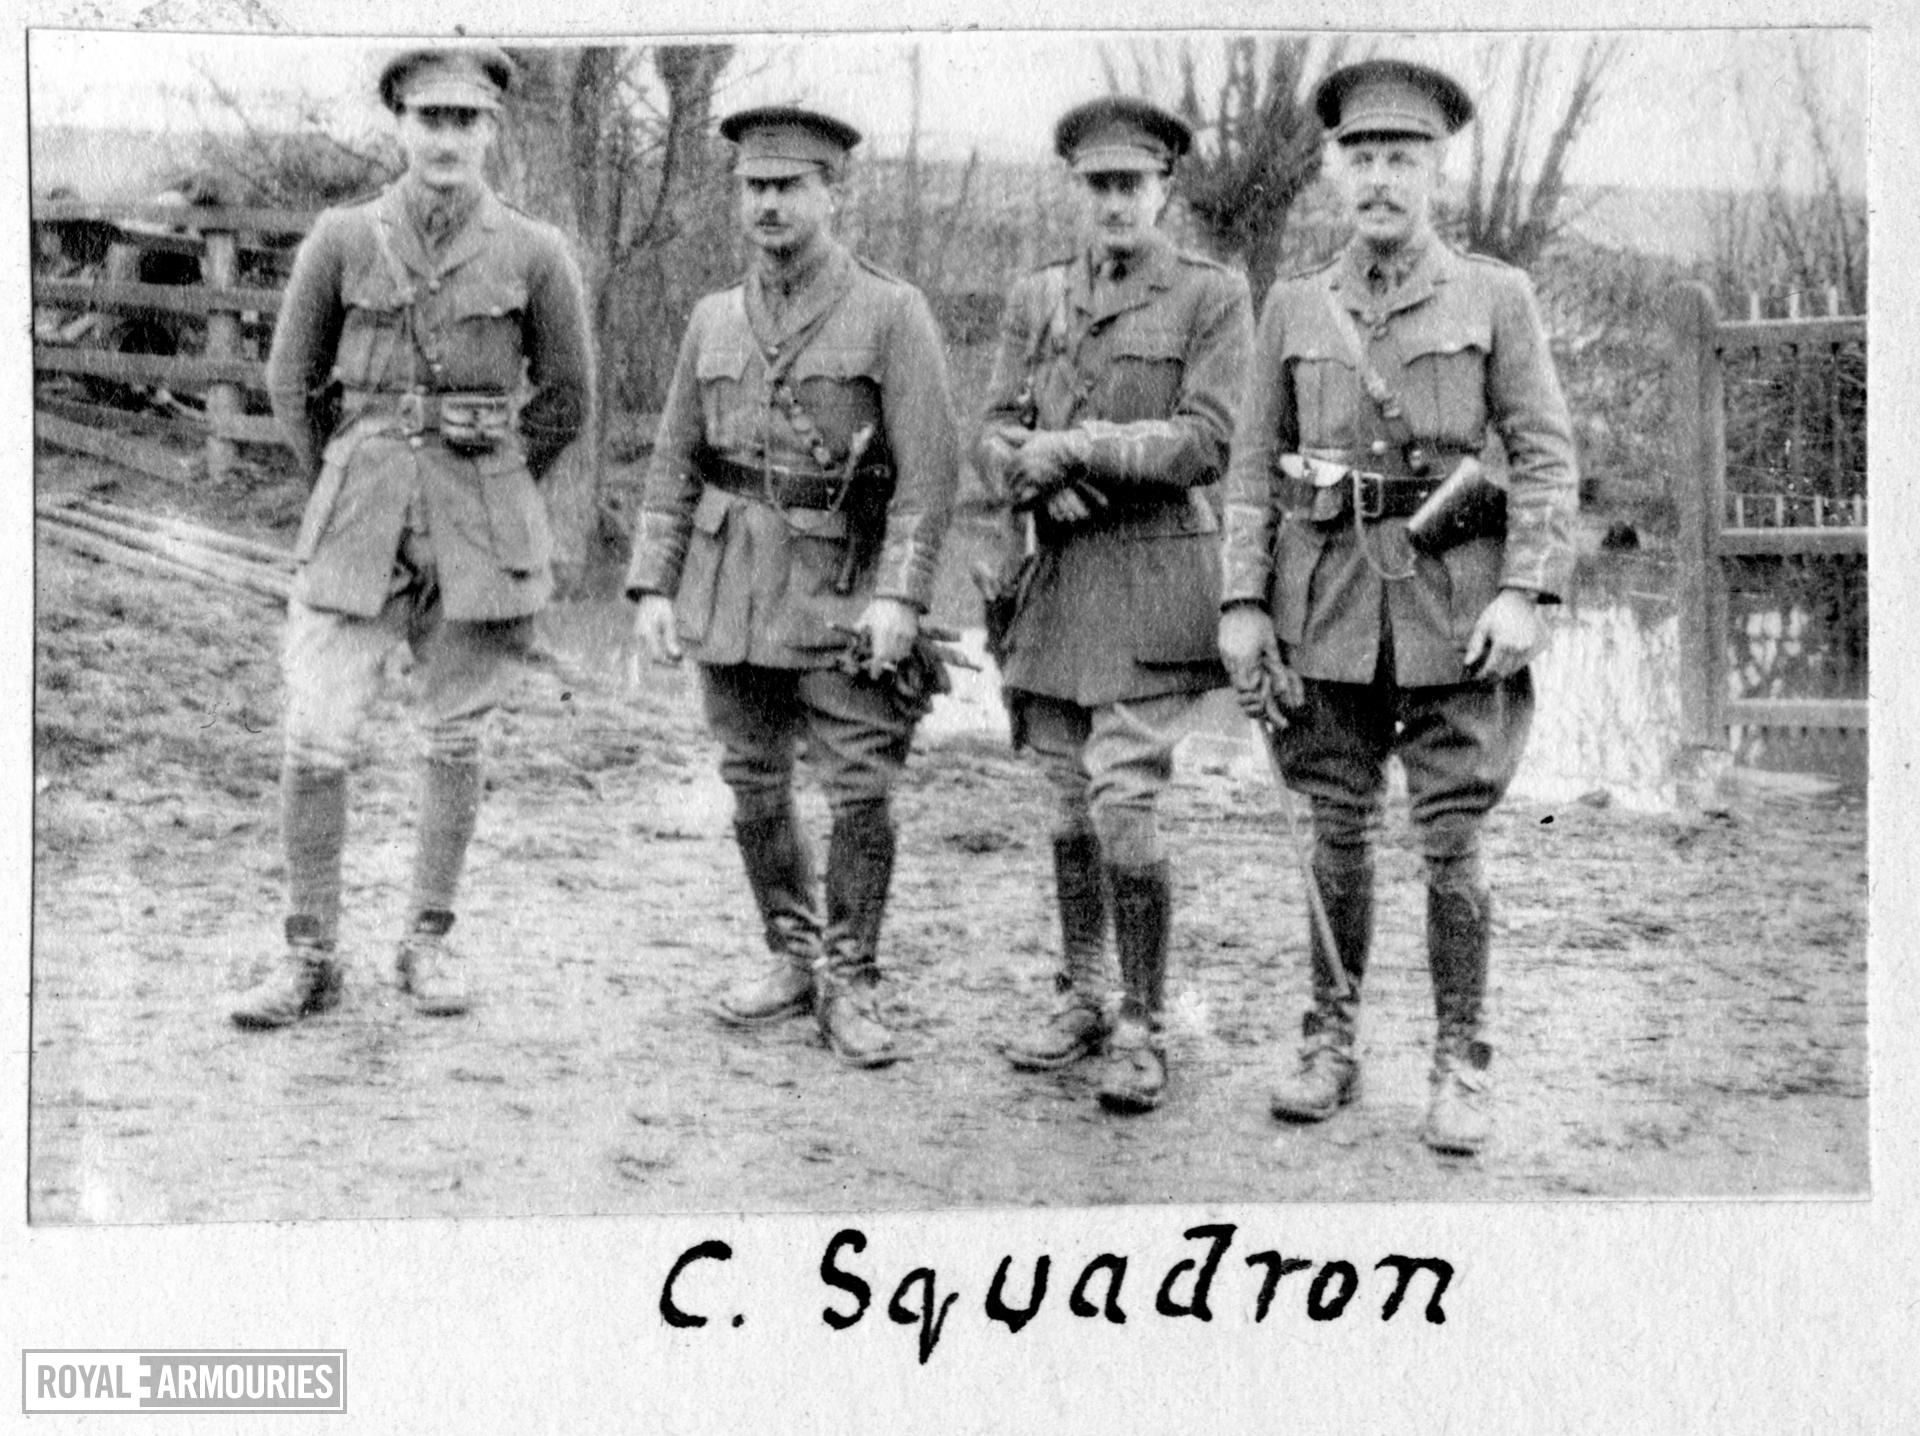 Photograph of 4 officers of the 2nd Dragoon Guards armed with Webley revolvers, Western Front, 1914-1915, taken from a photograph album compiled by Captain F.D.R. Milne,  2nd Dragoon Guards (Queen's Bays) recording his service with the regiment from 1913 to 1918, and including some family photographs from the 1920s.